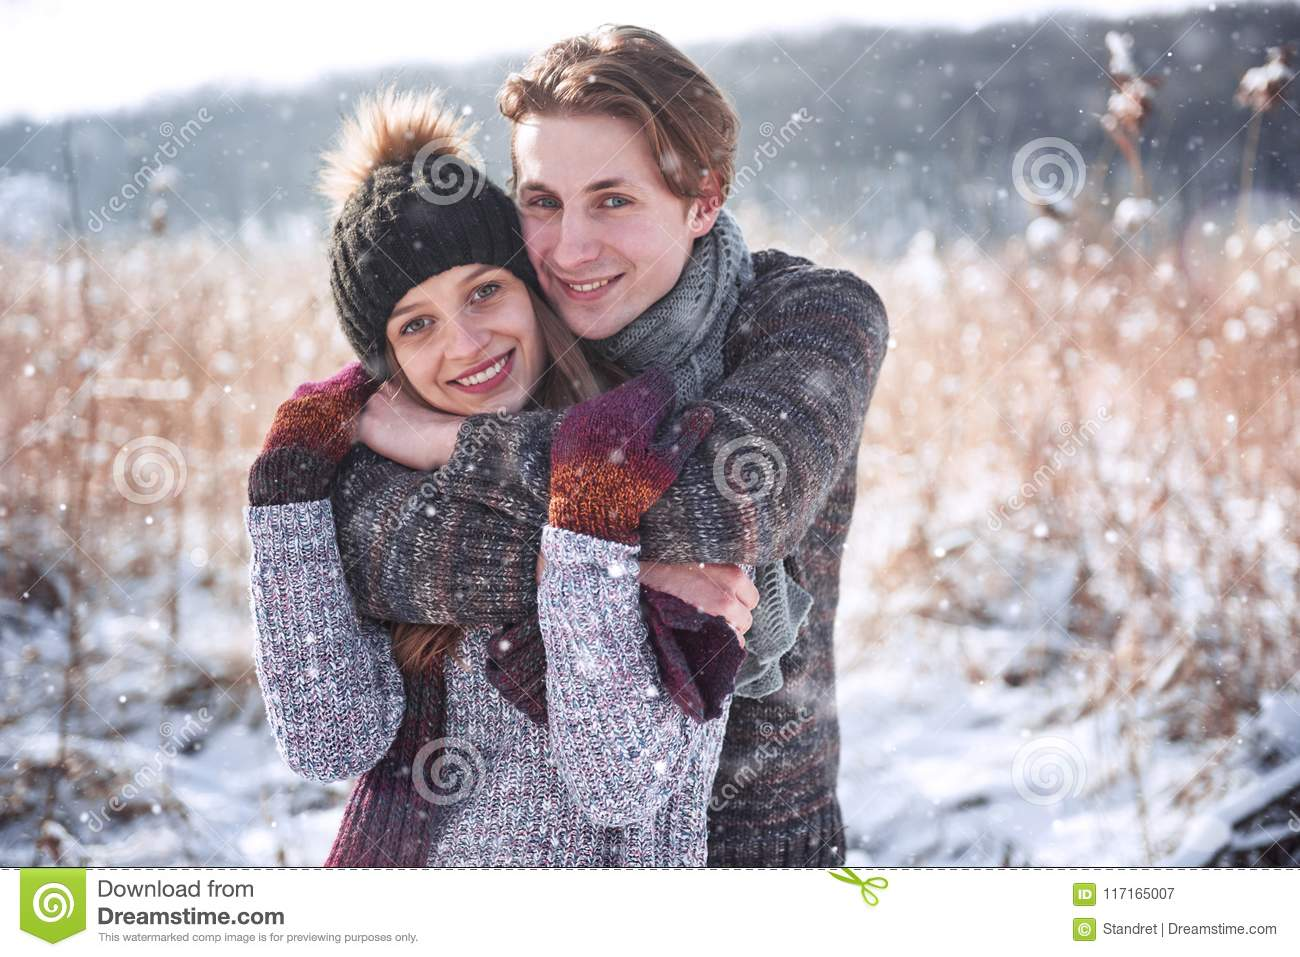 Christmas happy couple in love embrace in snowy winter cold forest, copy space, new year party celebration, holiday and